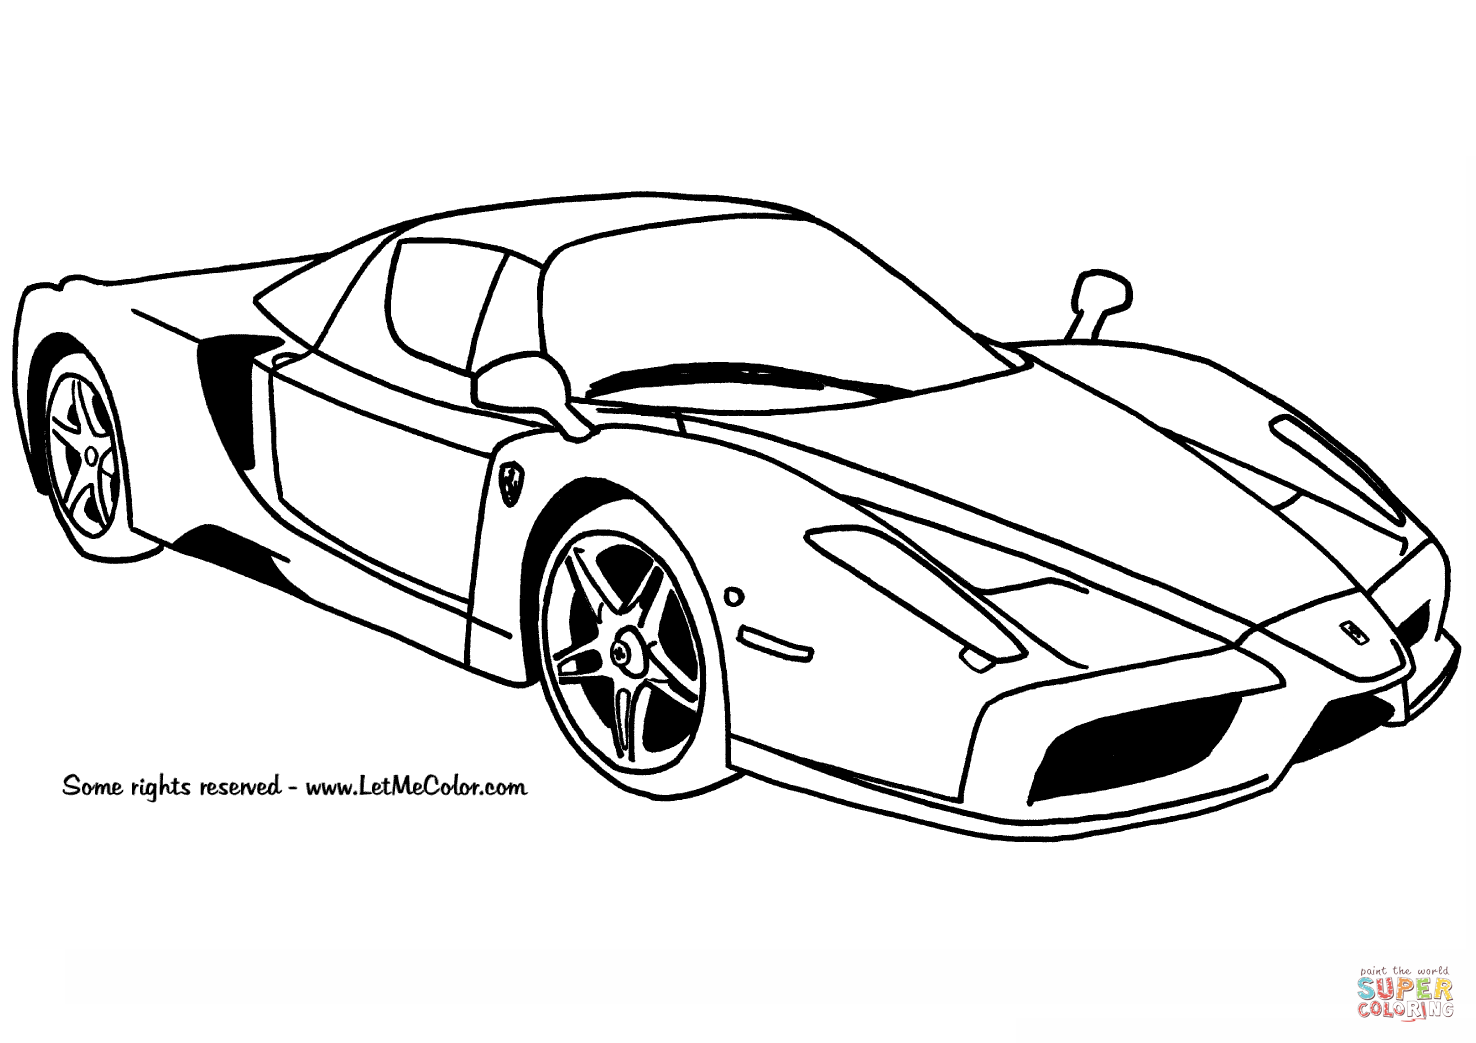 Ausmalbilder Autos Bugatti : Car Drawing Template At Getdrawings Com Free For Personal Use Car